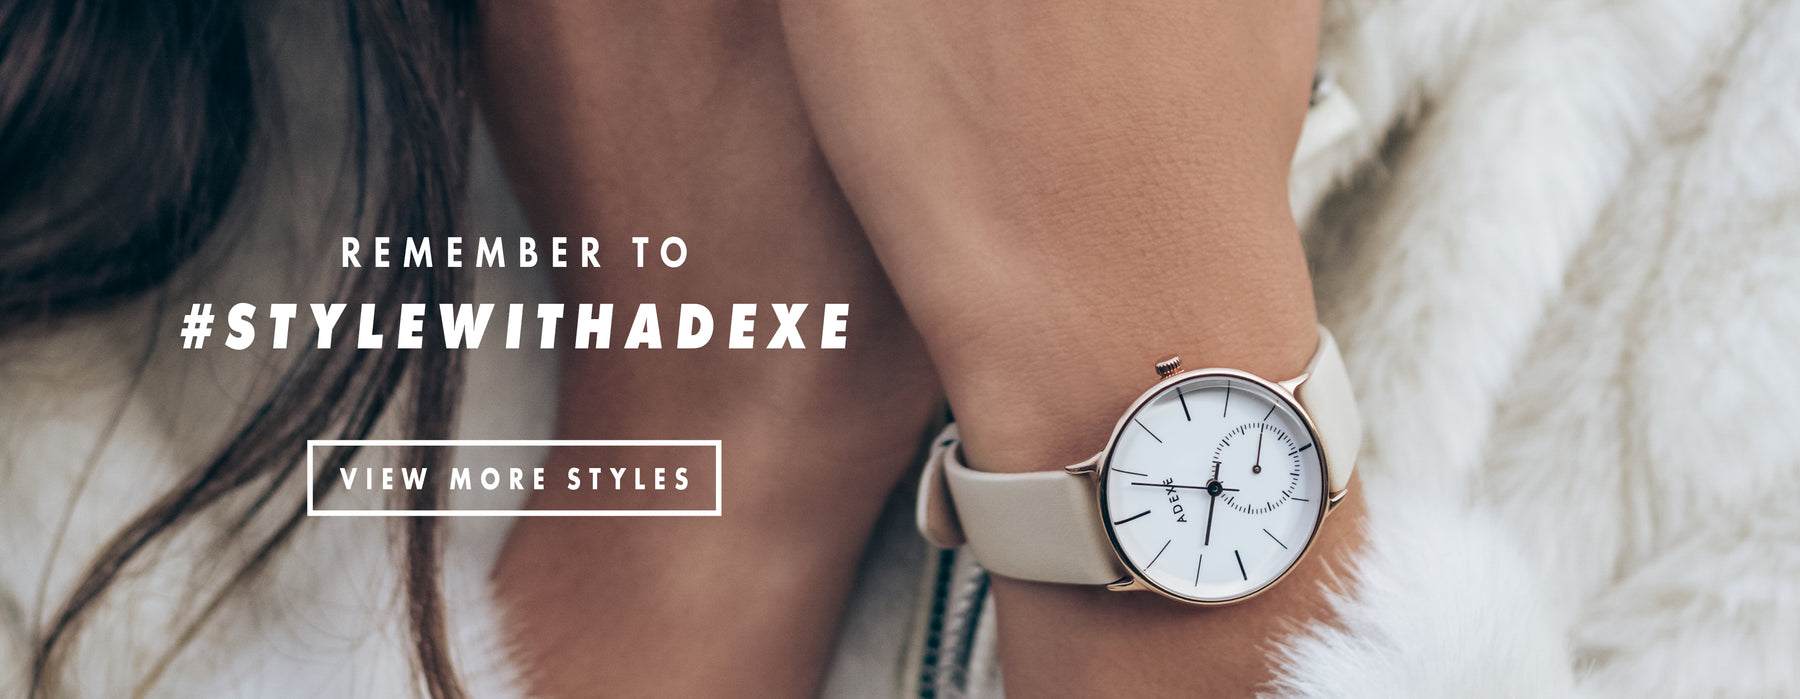 ADEXE Freerunner Collection